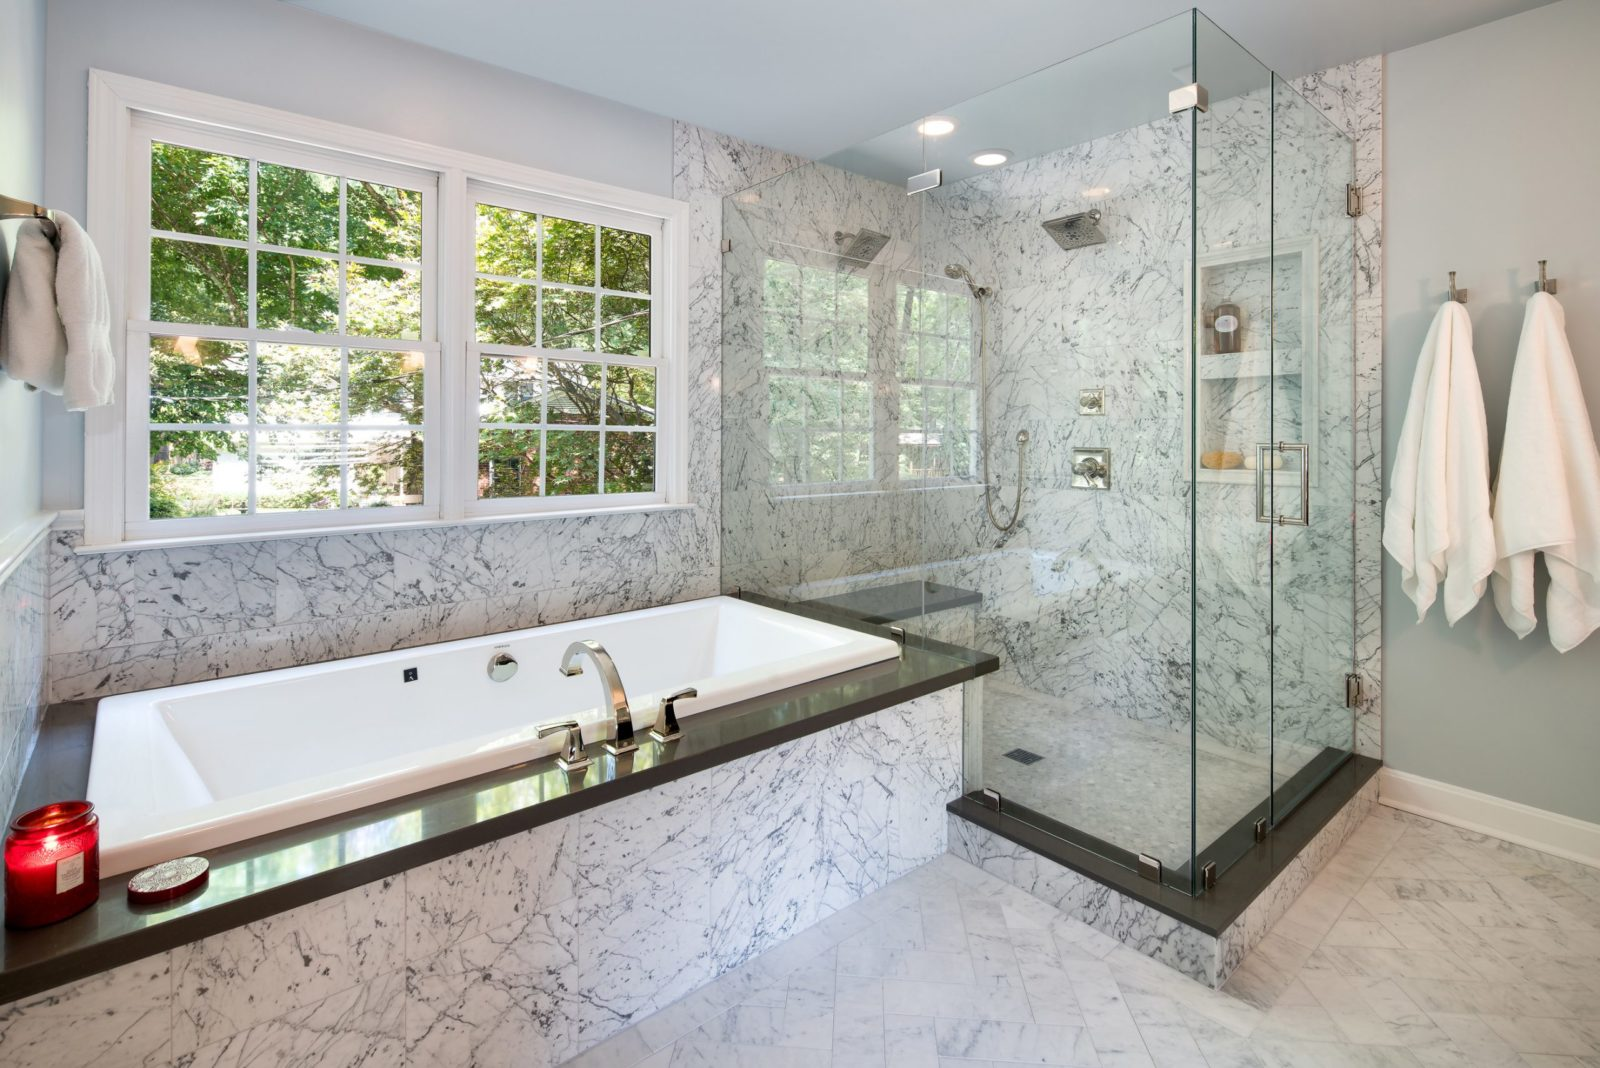 Marble shower with deck mounted tub